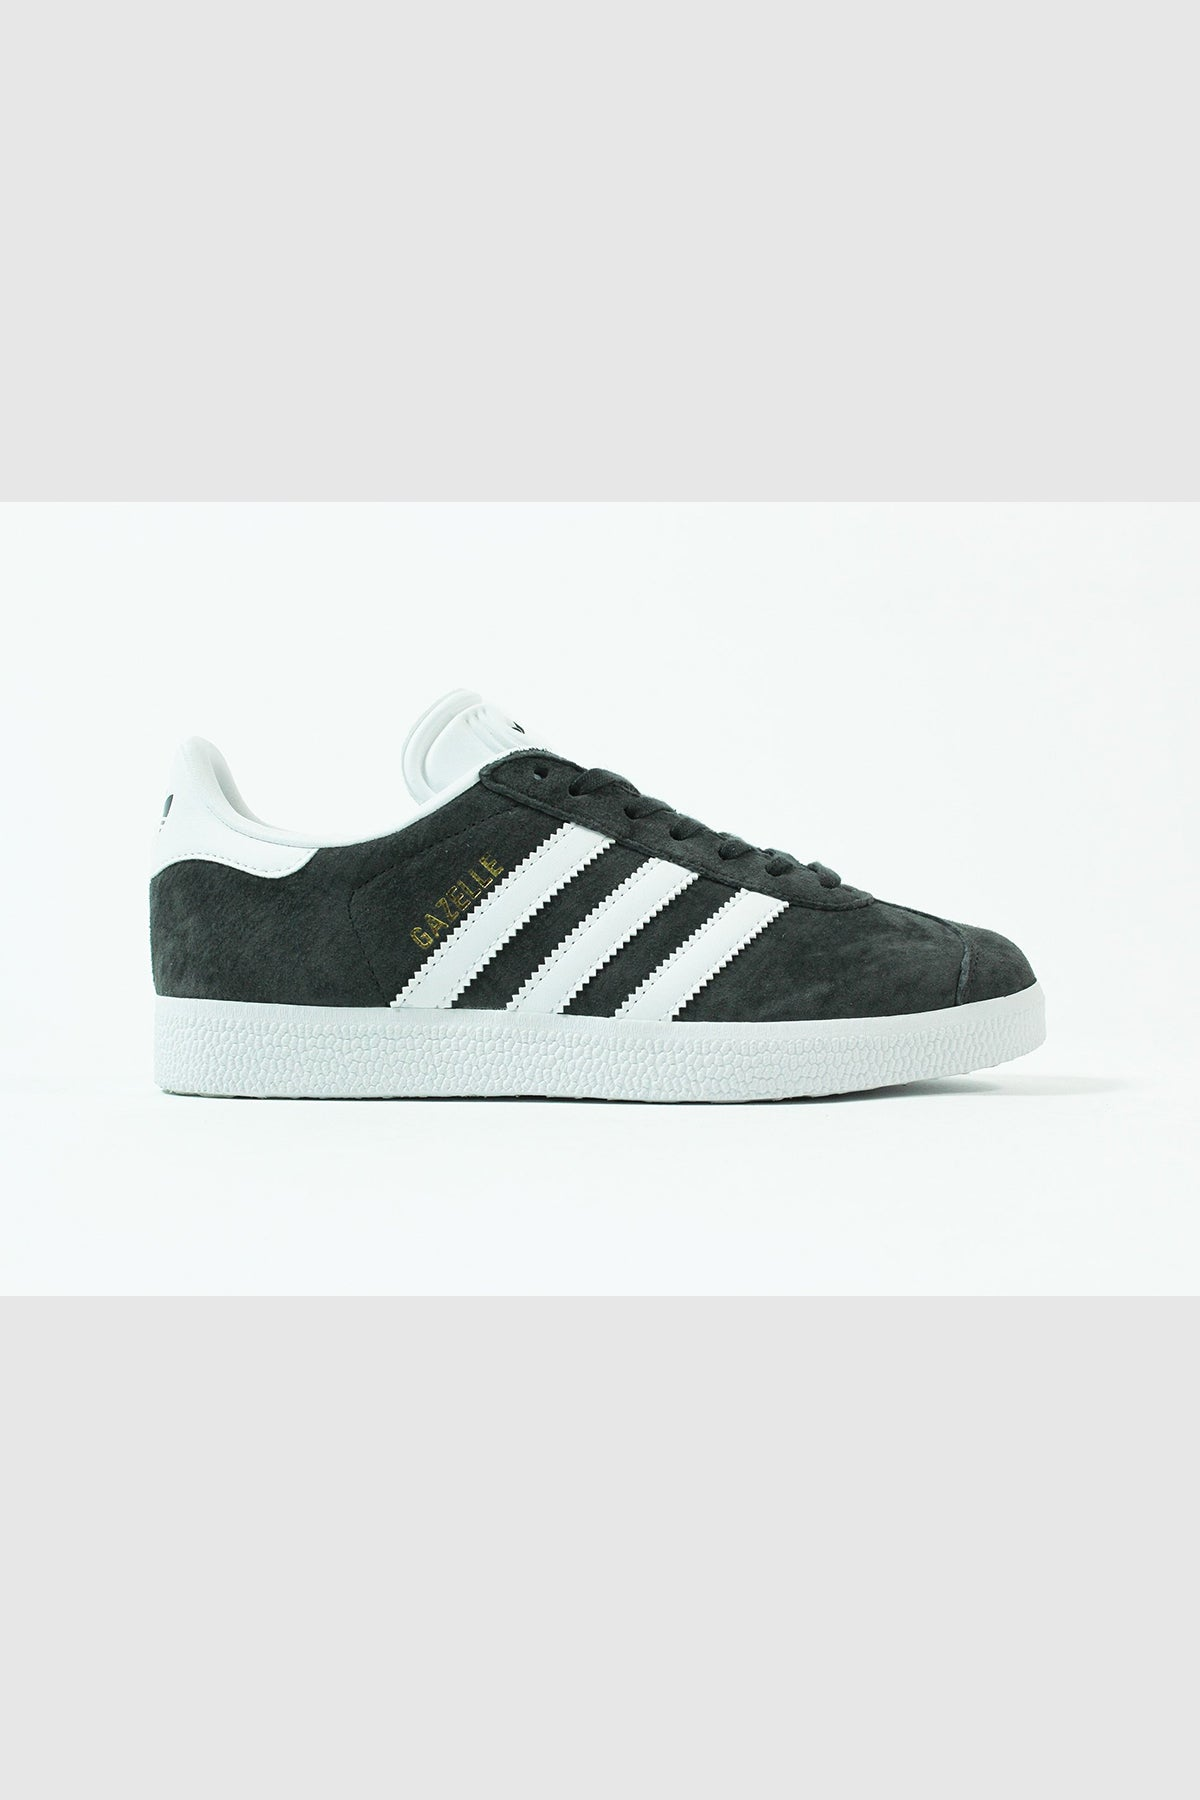 Adidas - Gazelle Women (Dgsogr/ White/ Goldmt) BB5480